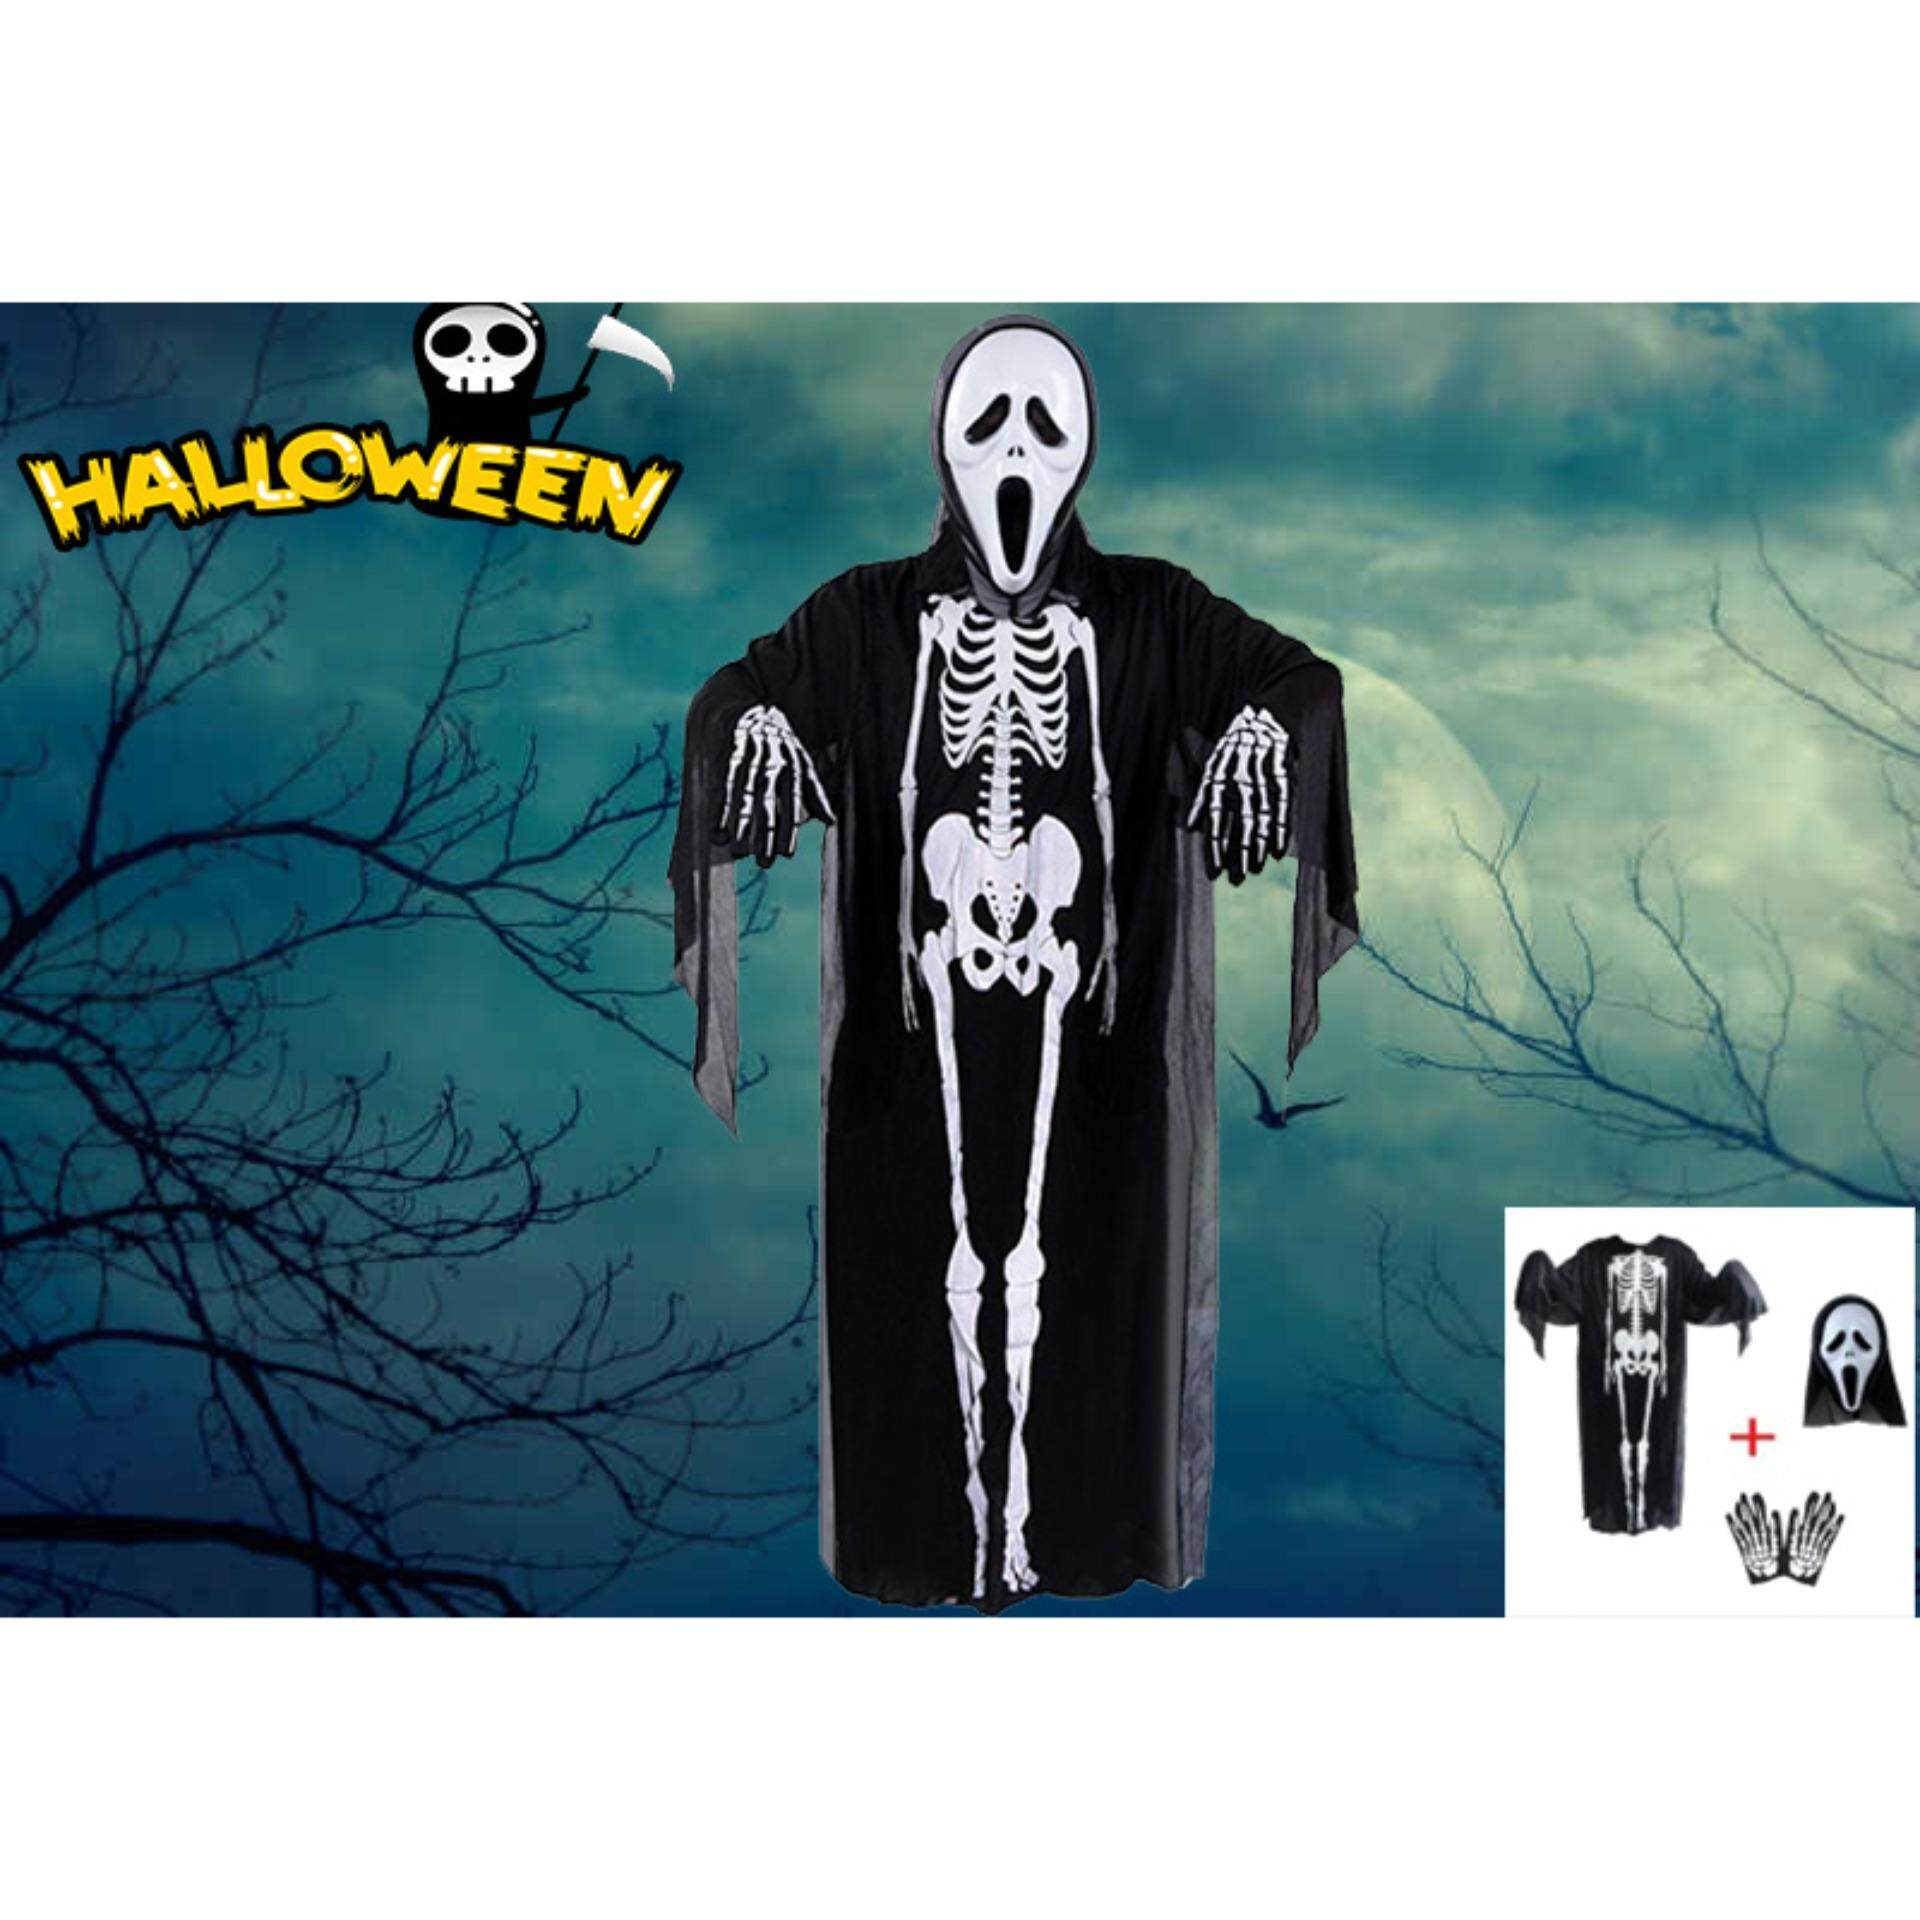 Halloween Costume Decoration Props Dress Childern Kids Skeleton Ghost Clothes Screaming Mask Cloth Gloves Masquerade Cosplay Accessories